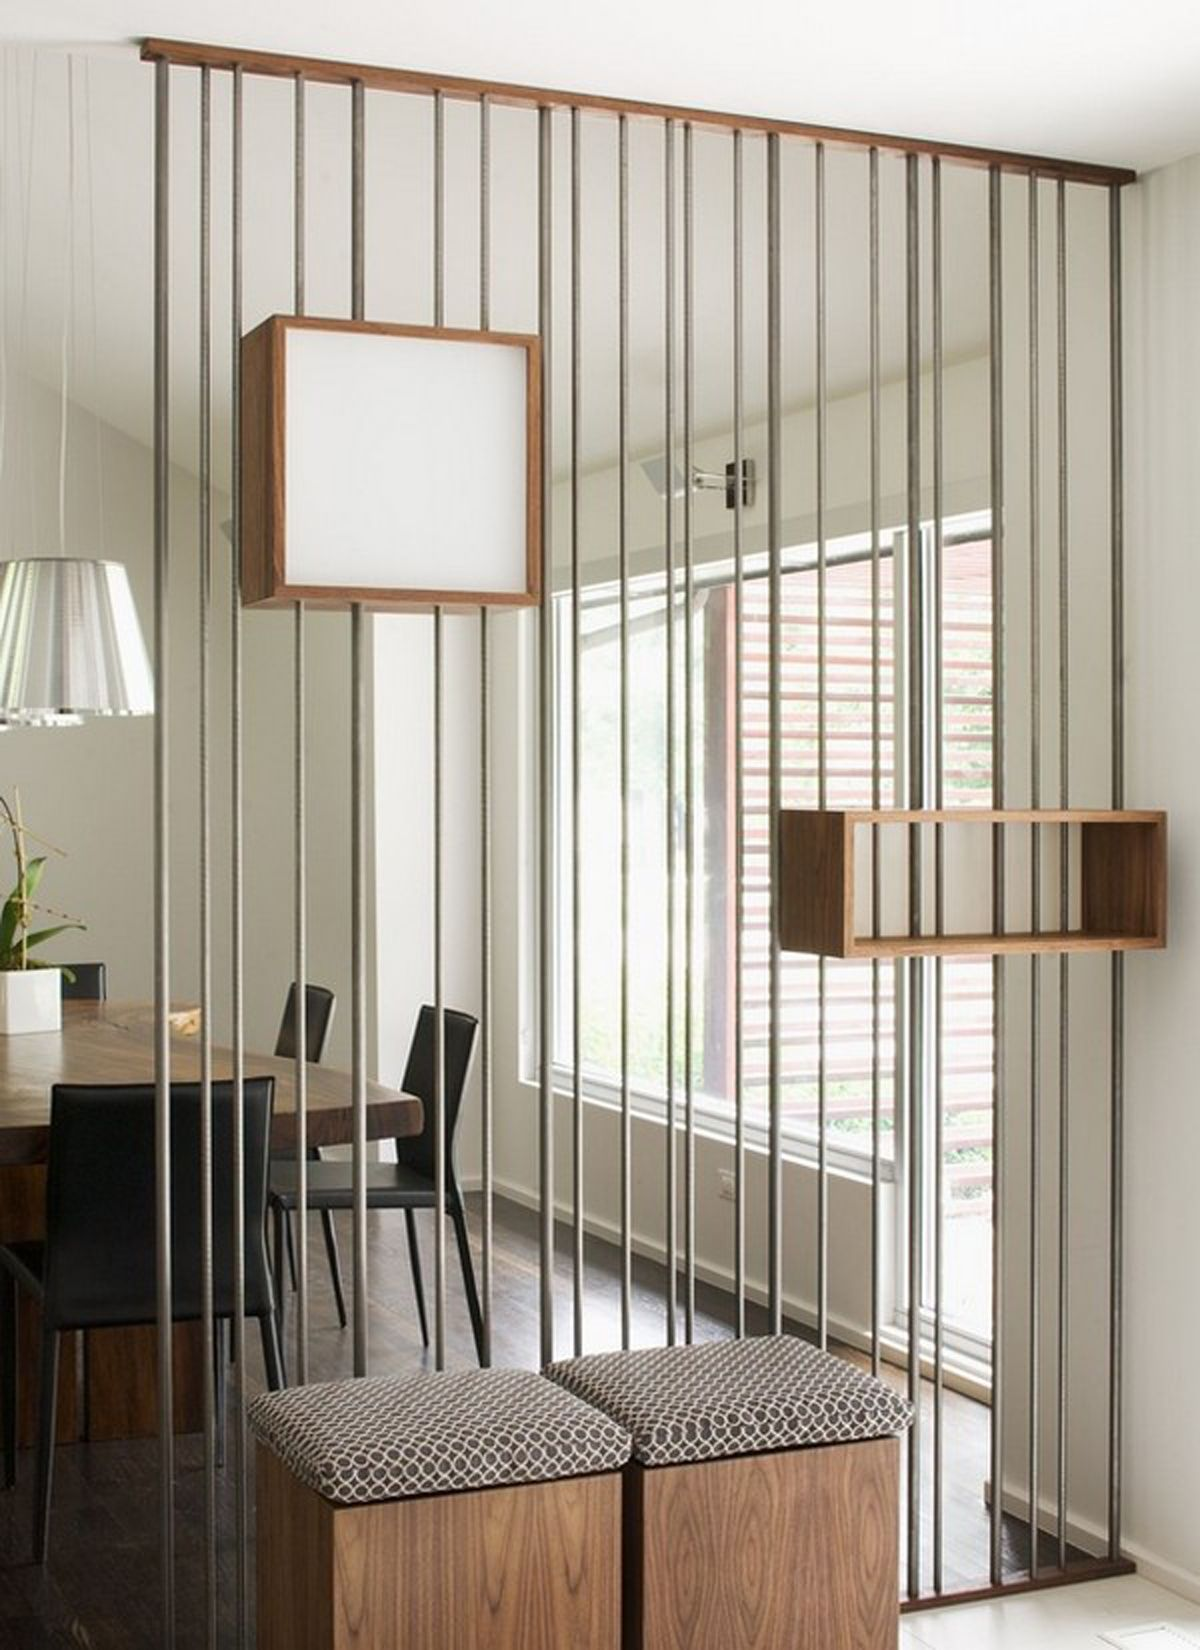 Creative decoration interior charming wooden square decors with rail